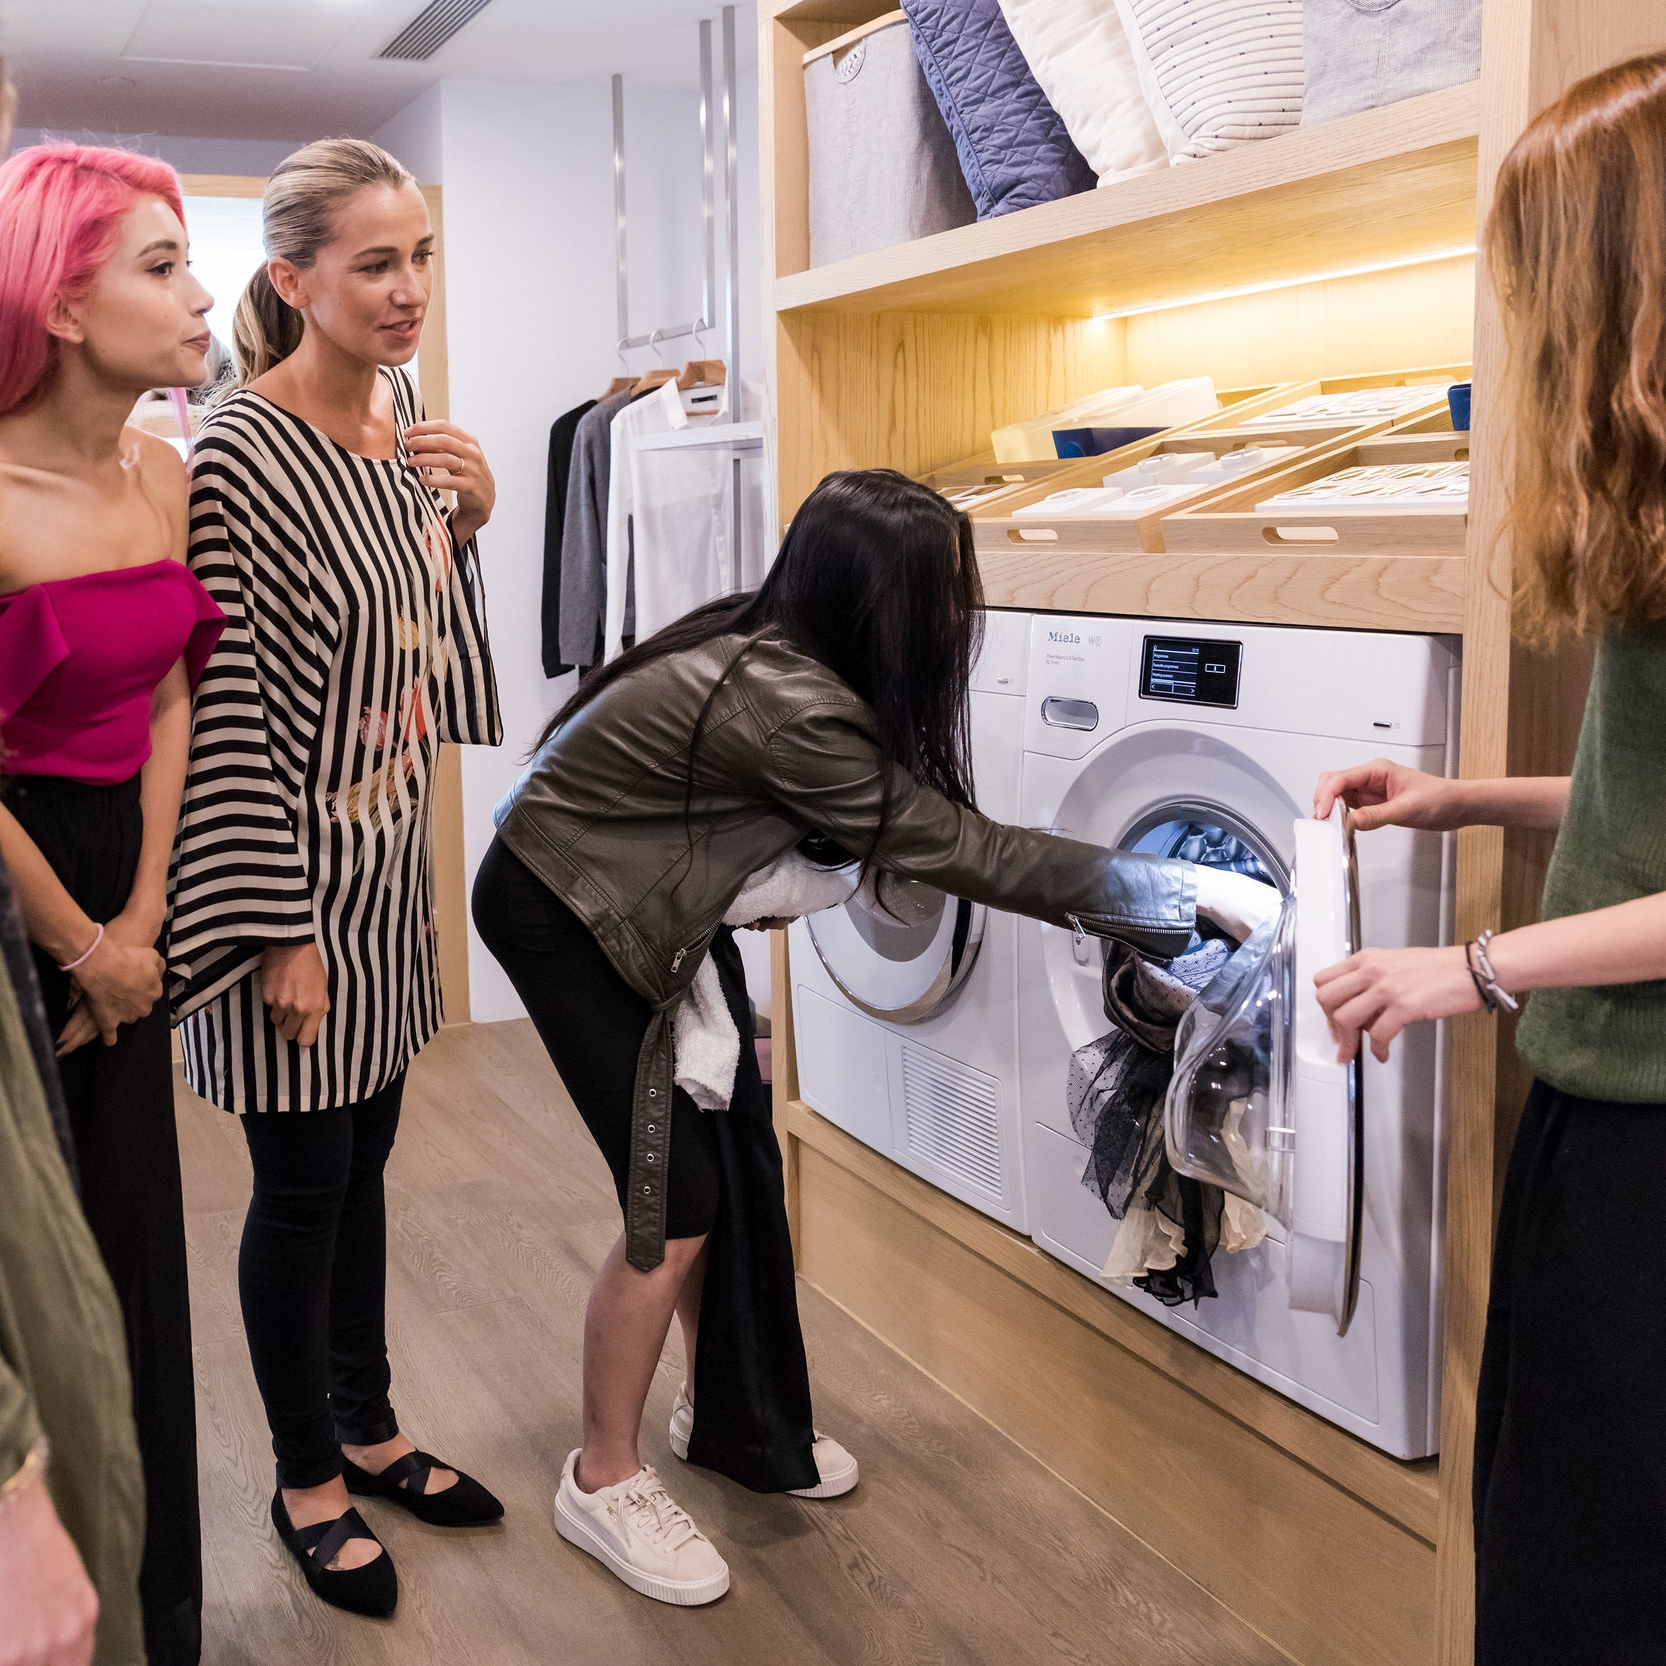 Redress x Miele The Consumer Care Challenge